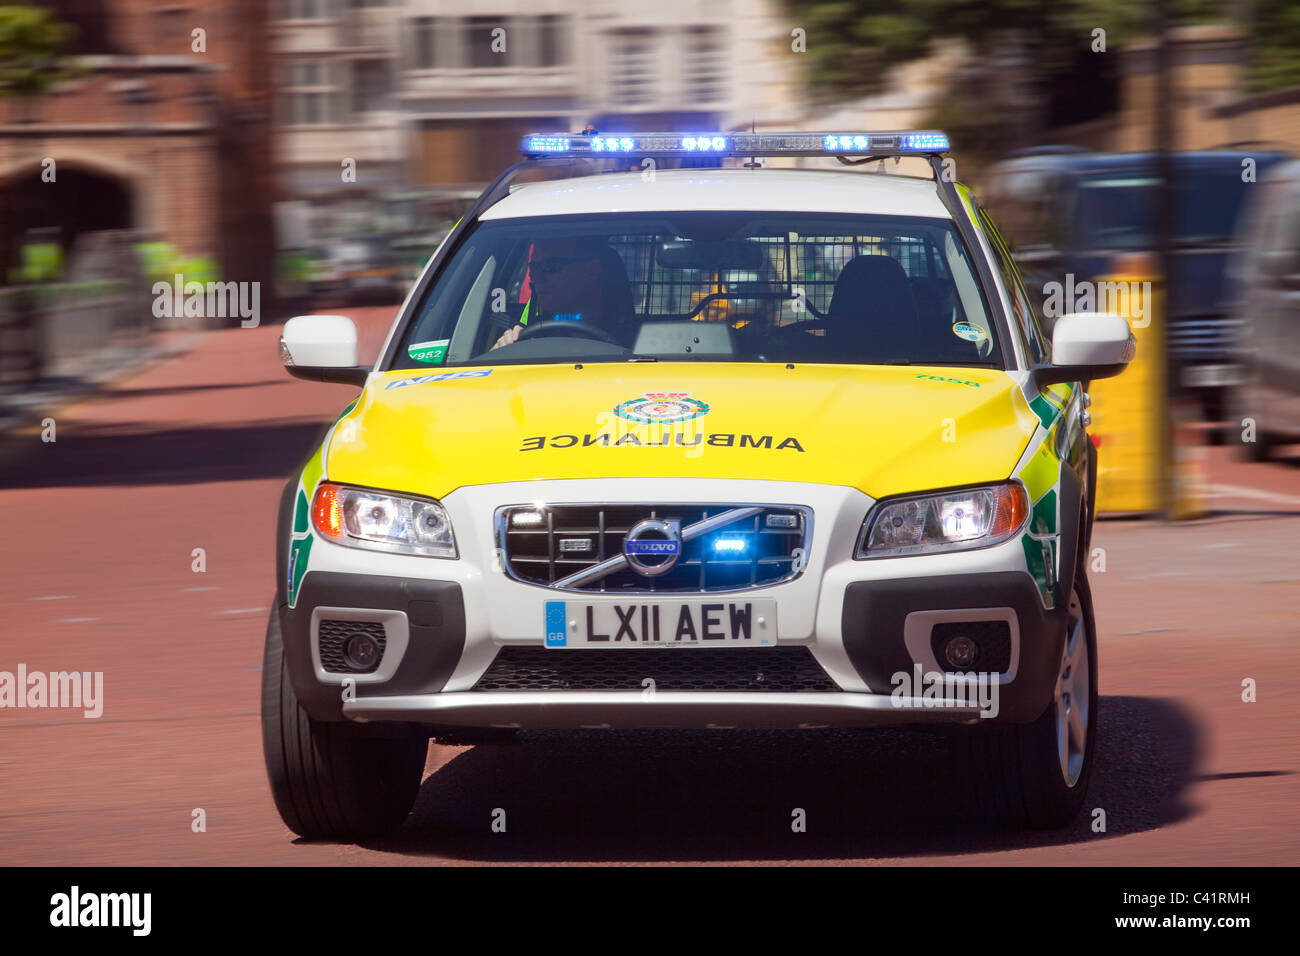 Emergency Ambulance speeding to an accident - Stock Image